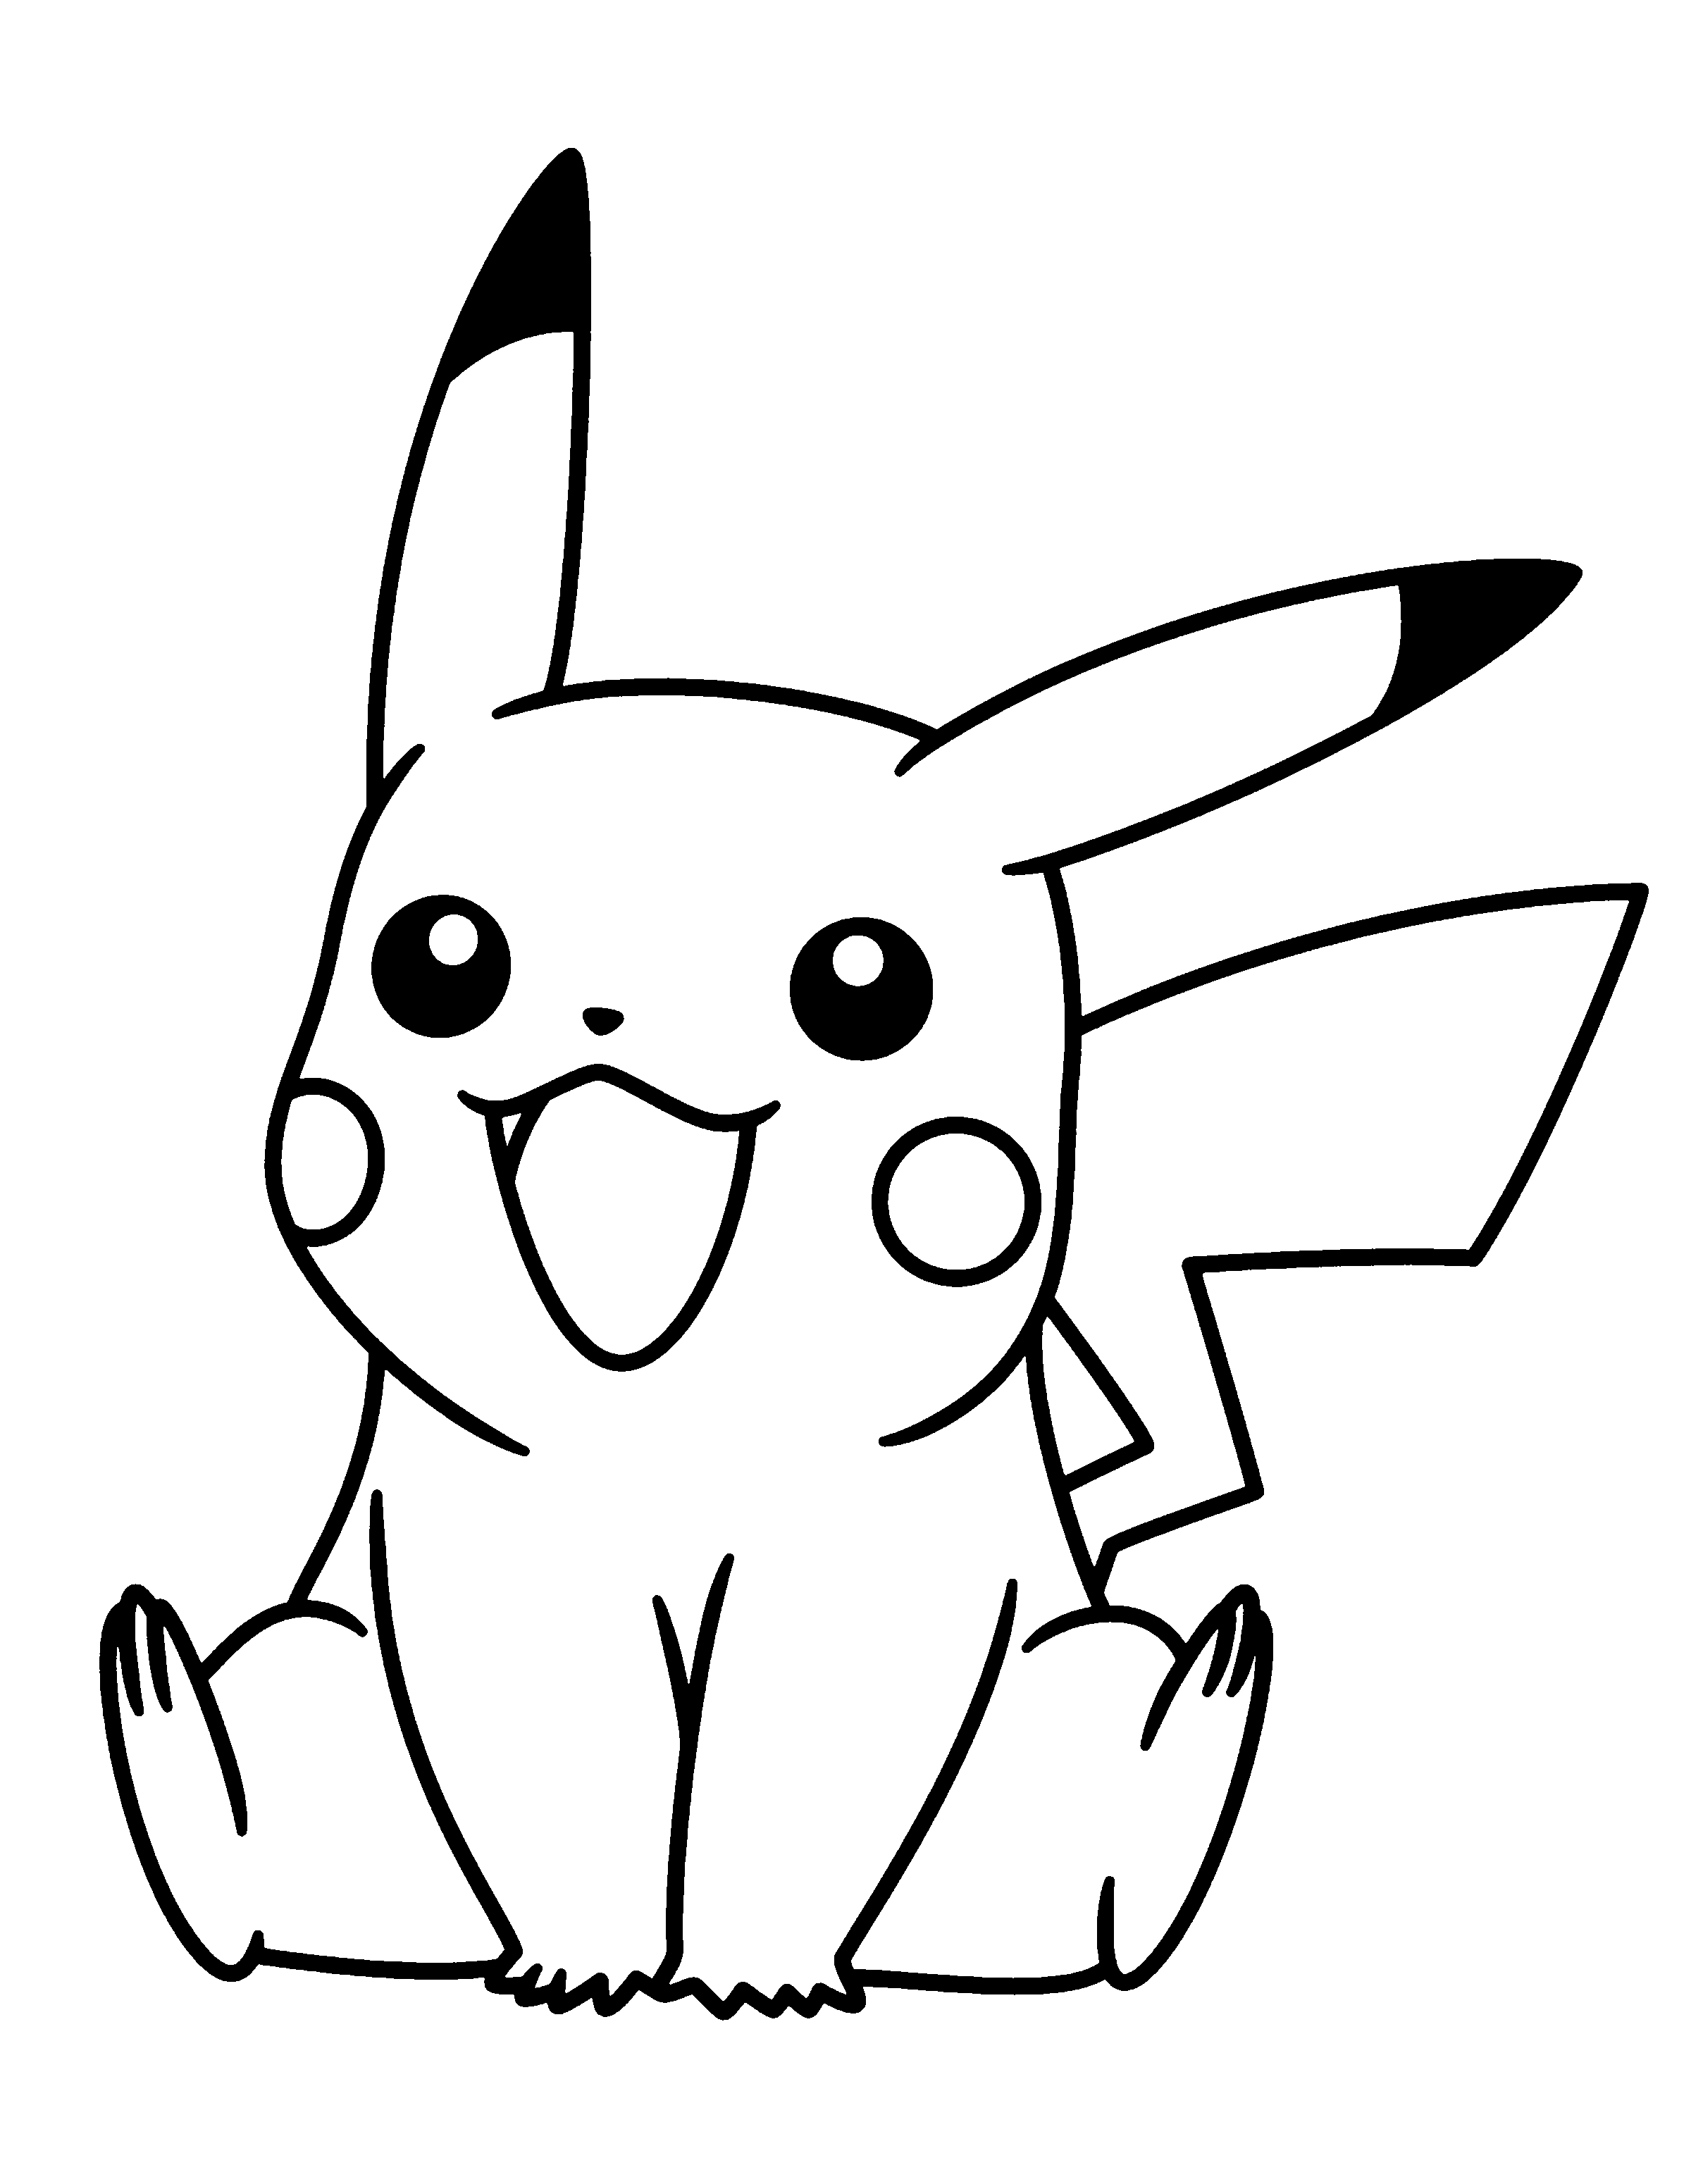 pokemon black and white clipart